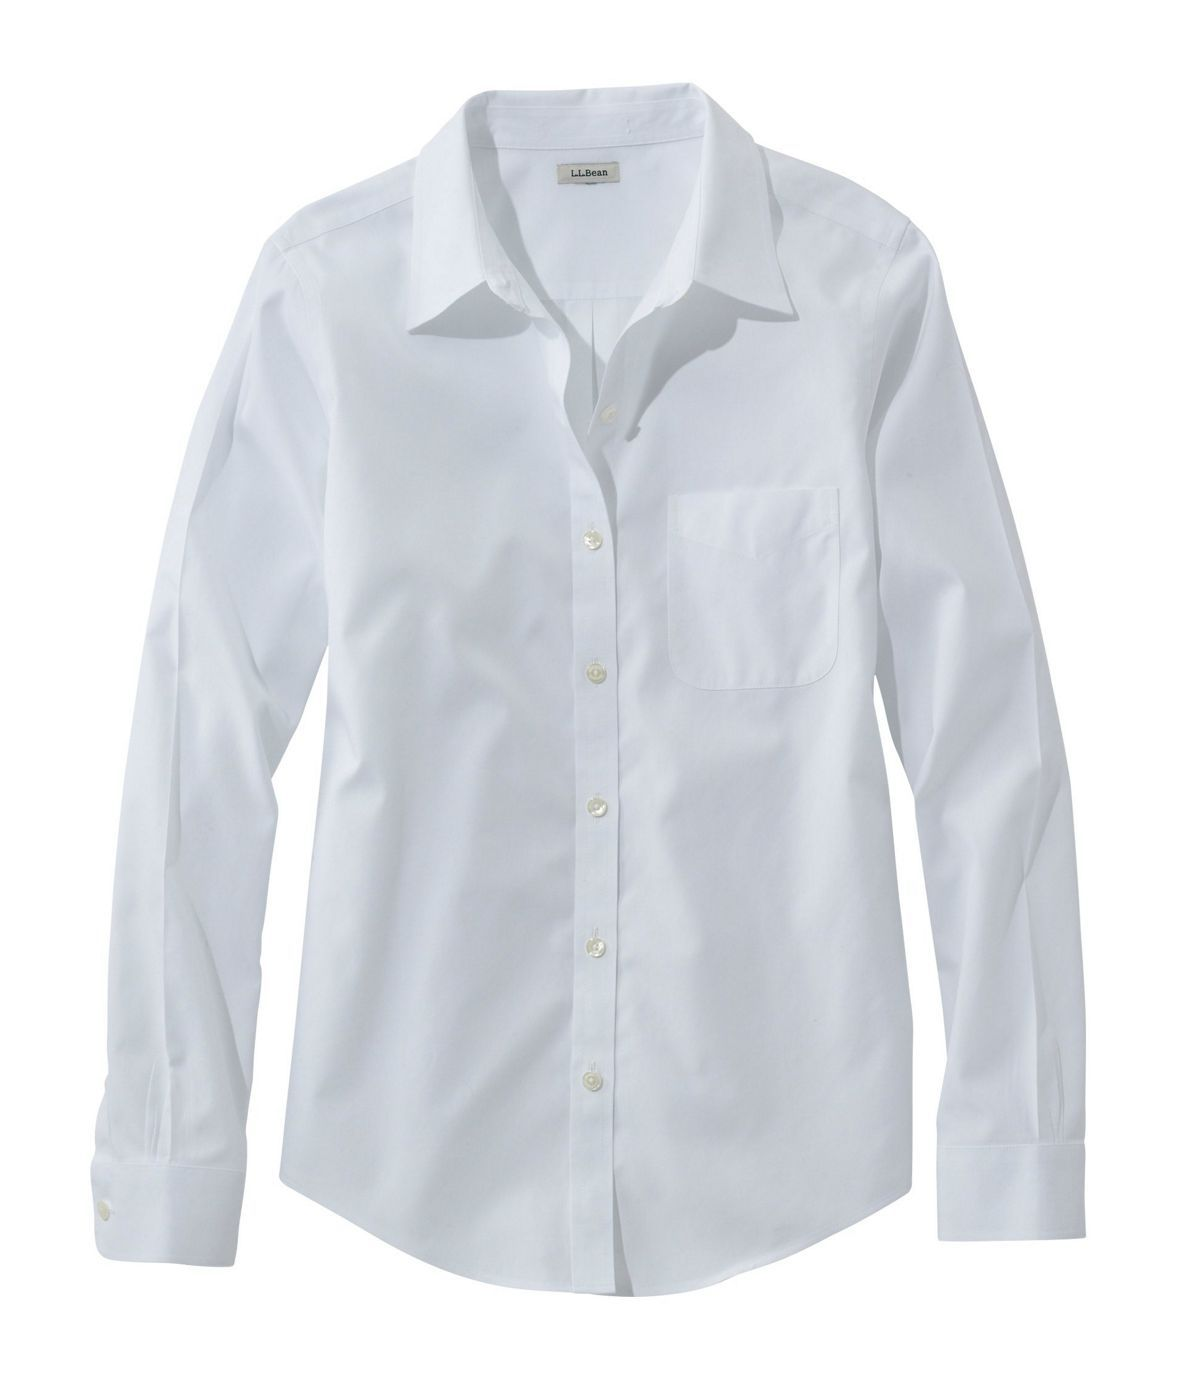 Women S Wrinkle Free Pinpoint Oxford Shirt Long Sleeve Relaxed Fit Oxford Shirt Women Shirt Outfit Women Oxford Shirt Women Outfit [ 1379 x 1200 Pixel ]